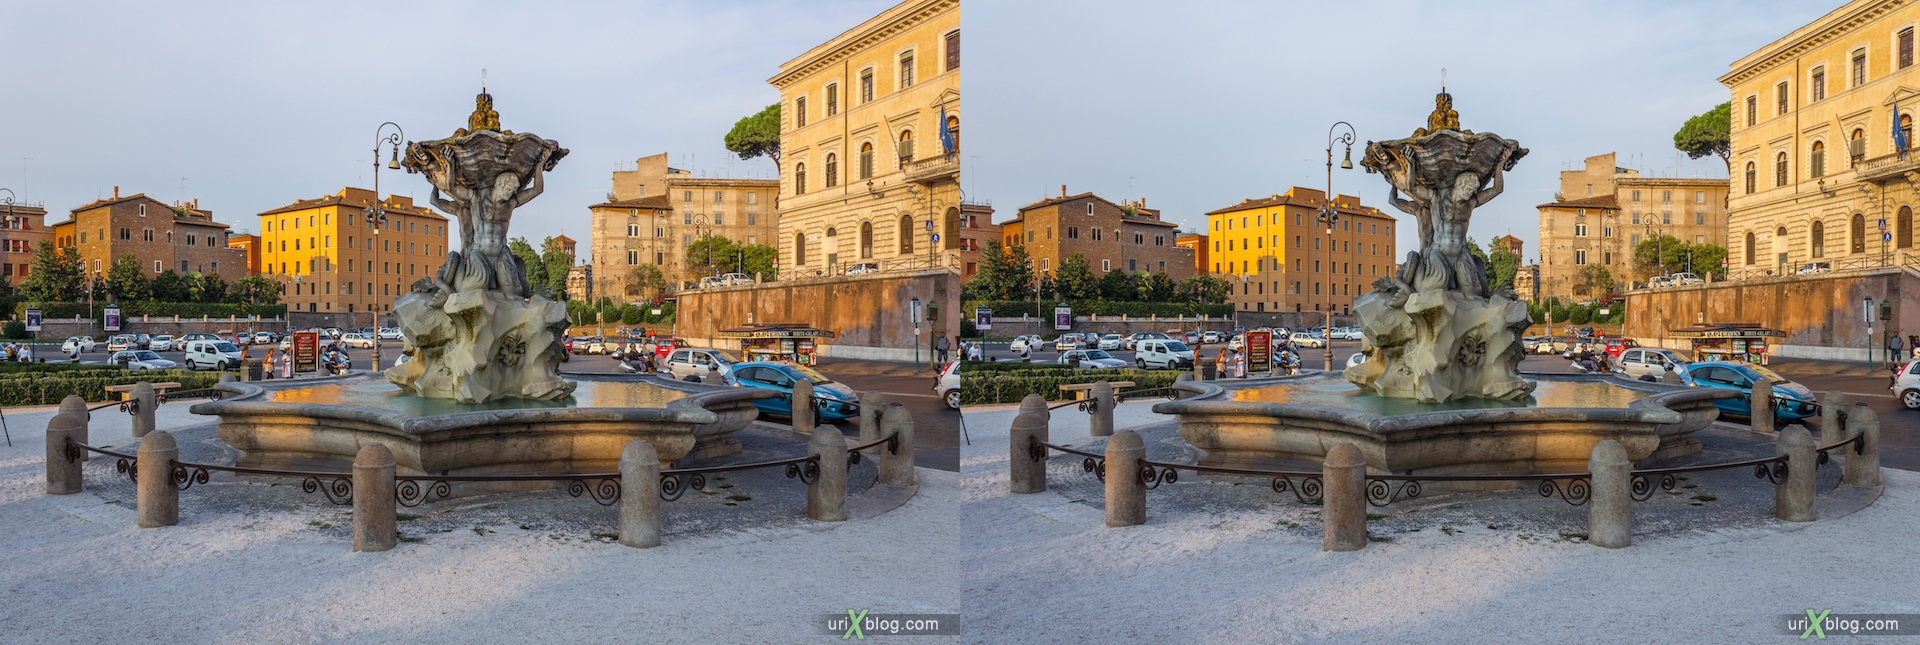 2012, fountain of the Tritons, Forum Boarium, Rome, Italy, 3D, stereo pair, cross-eyed, crossview, cross view stereo pair